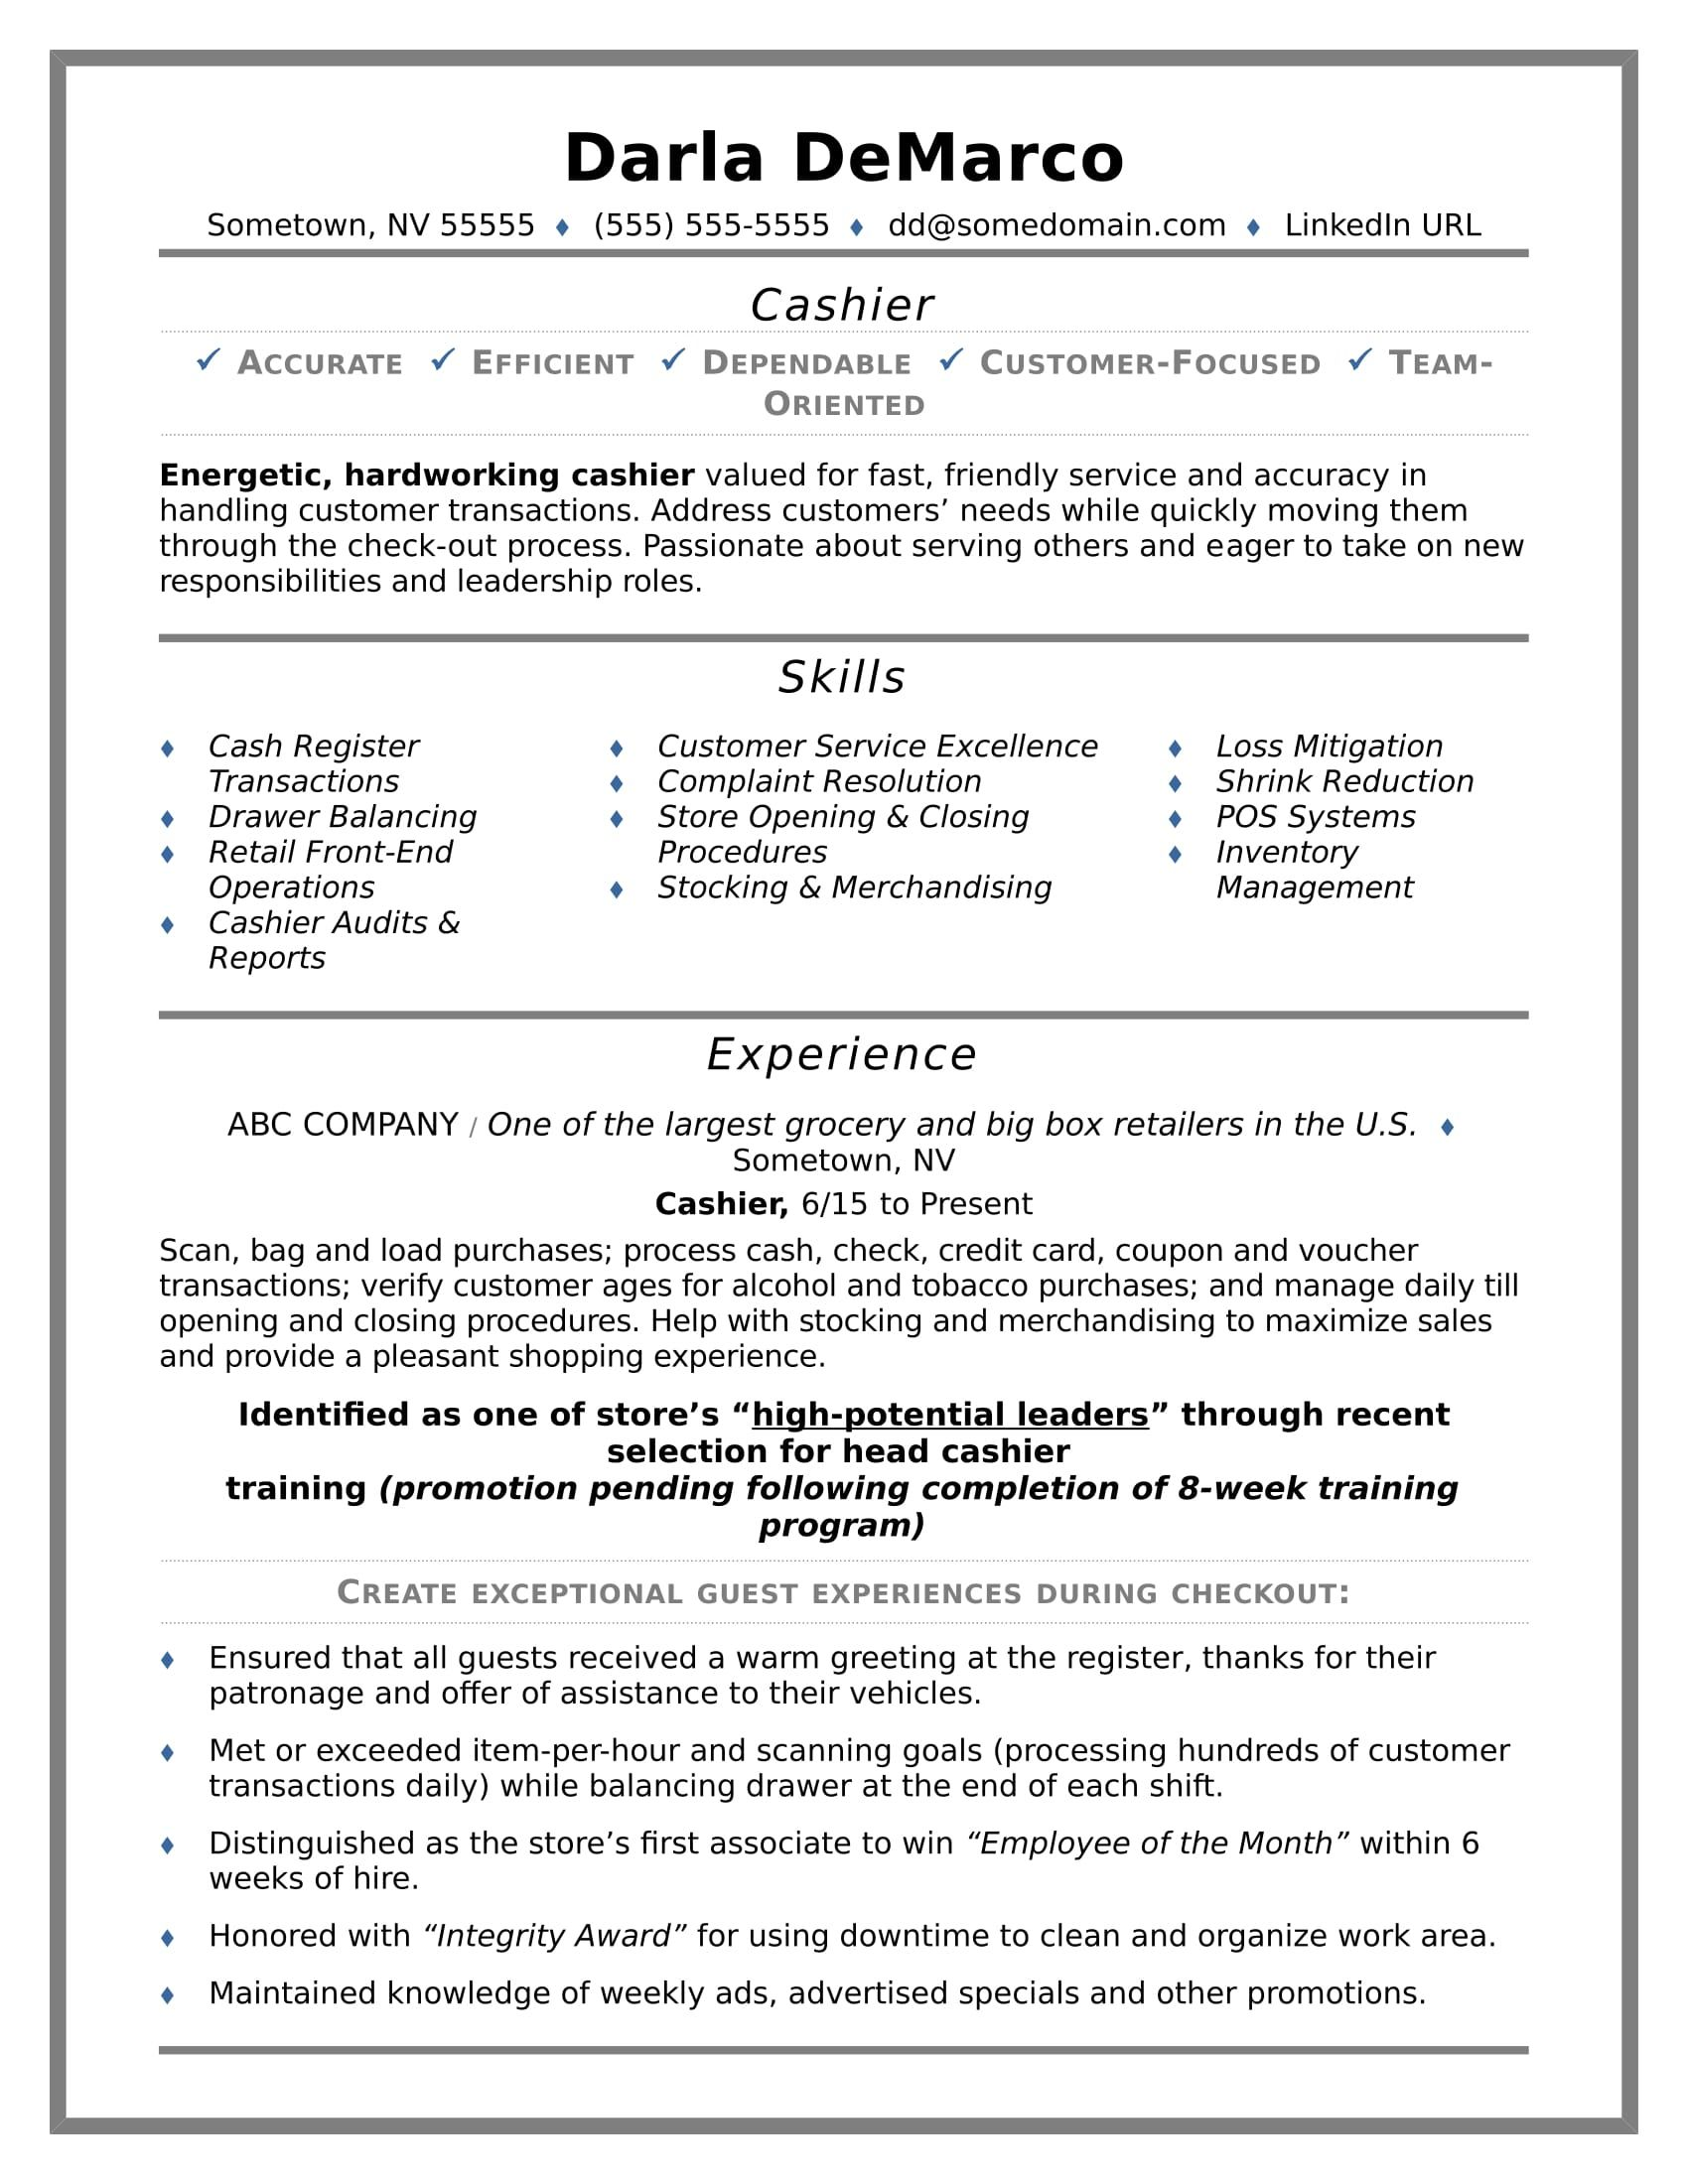 Cashier Sample Resume Captivating Cashier Resume Sample  Pinterest  Sample Resume And Career Advice